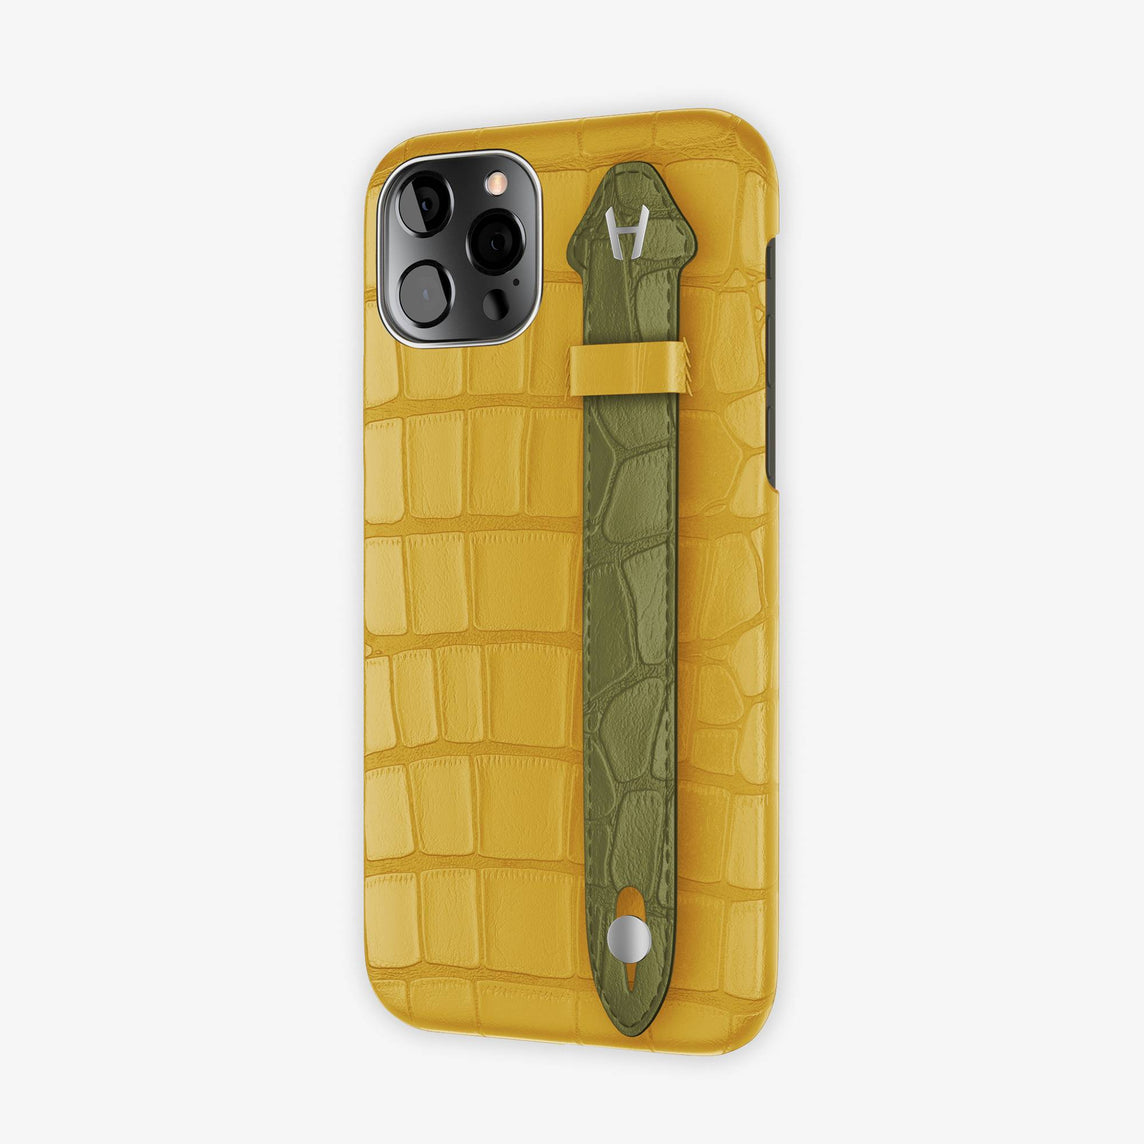 Alligator Side Finger Case iPhone 12 & iPhone 12 Pro | Yellow/Khaki -Stainless Steel